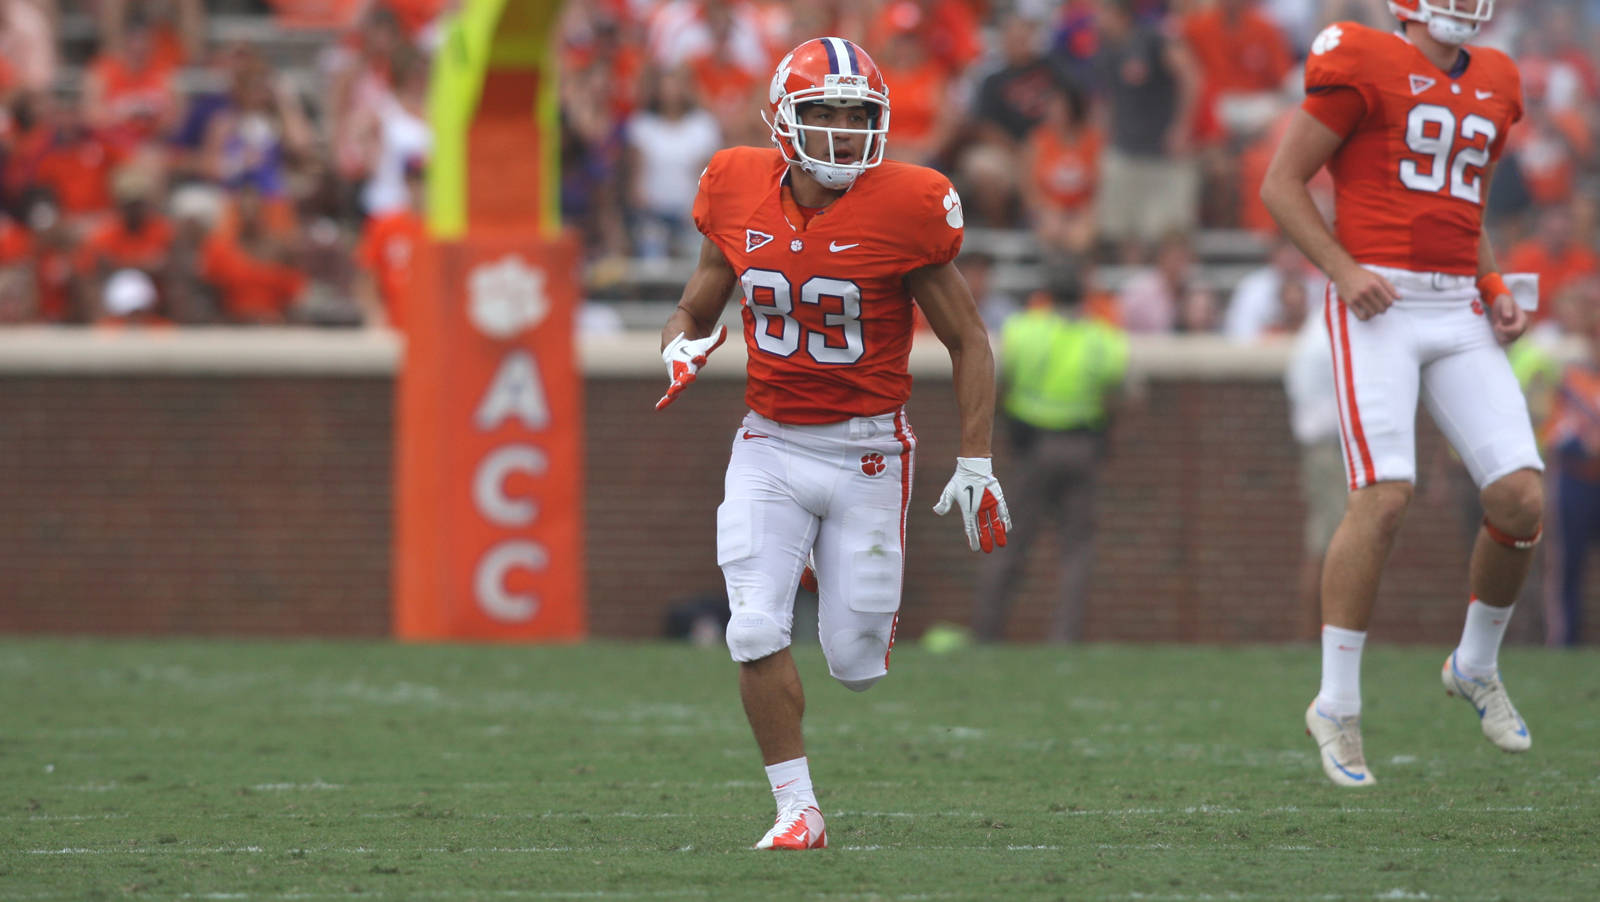 Rodriguez Nominated for Discover Orange Bowl-FWAA Courage Award